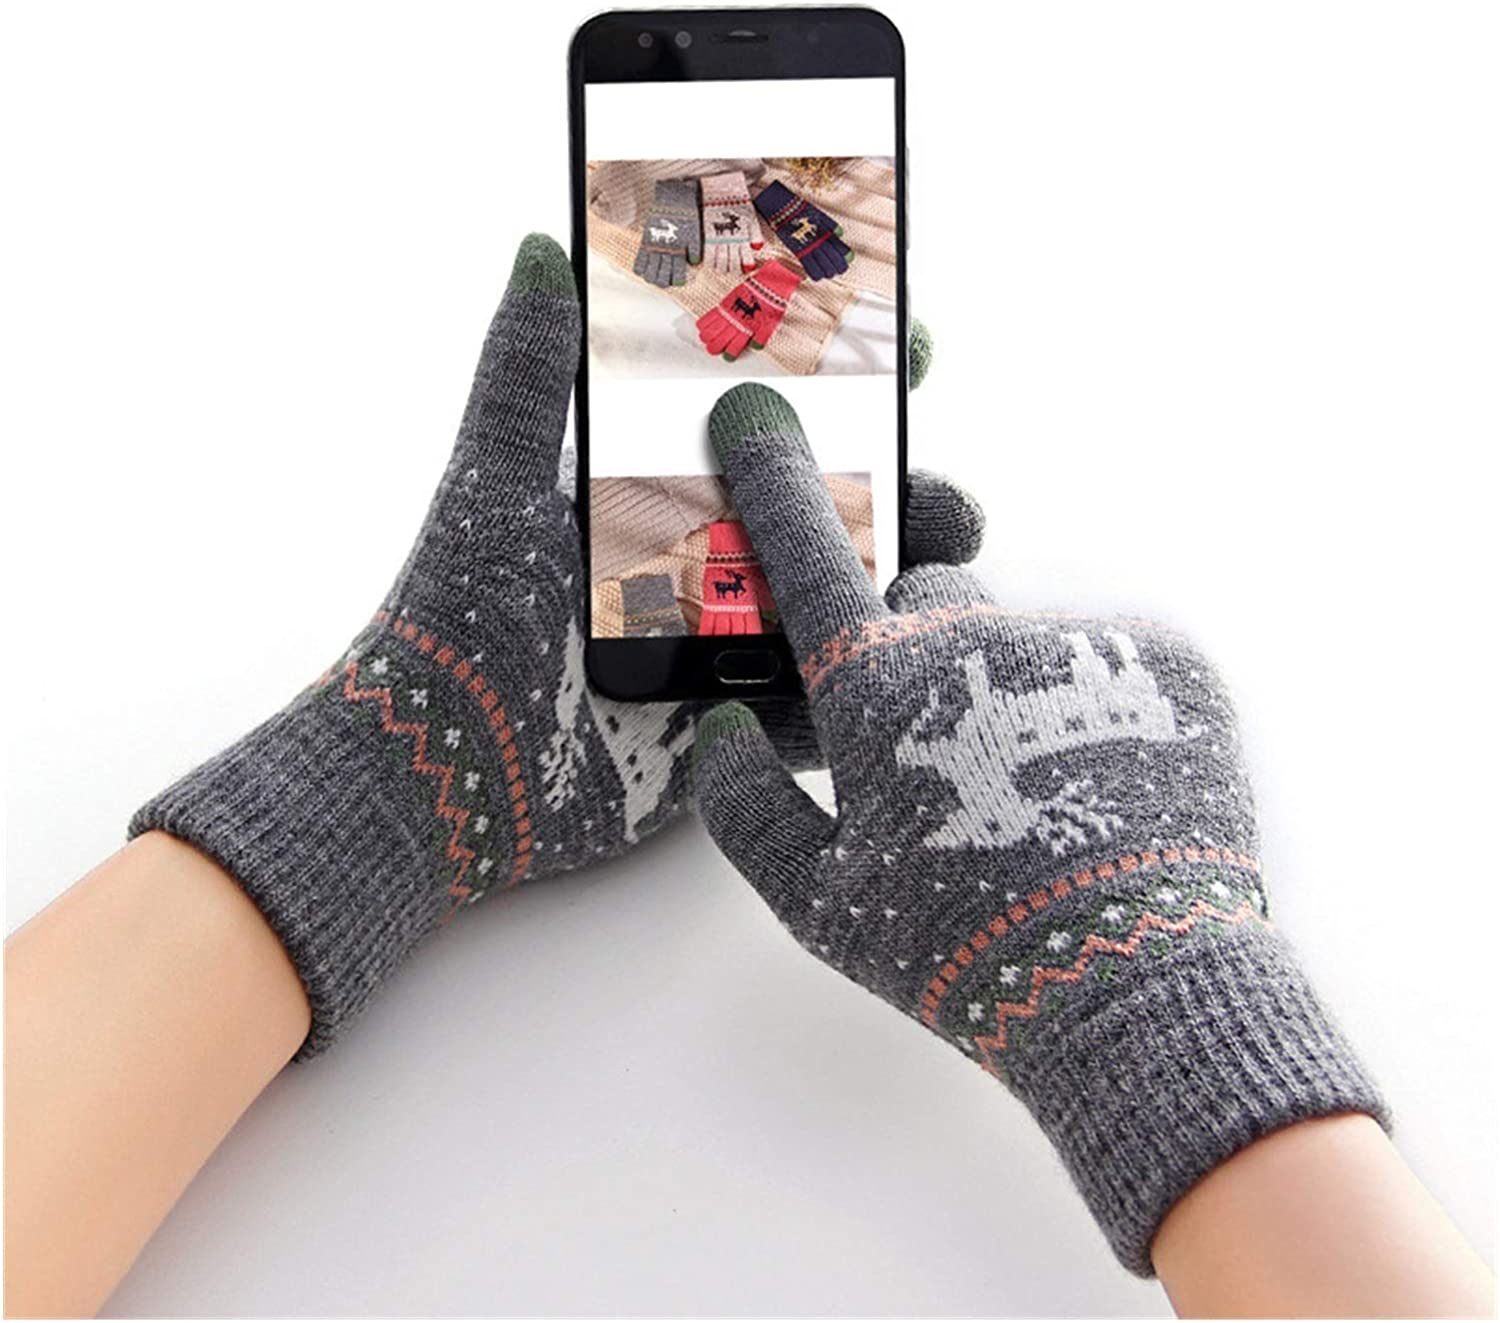 JBIVWW Fashion Knitted Thick Gloves for Men & Women Christmas Printed Warm Autumn Winter Full Finger Gloves (Color : Thick Rose Red)